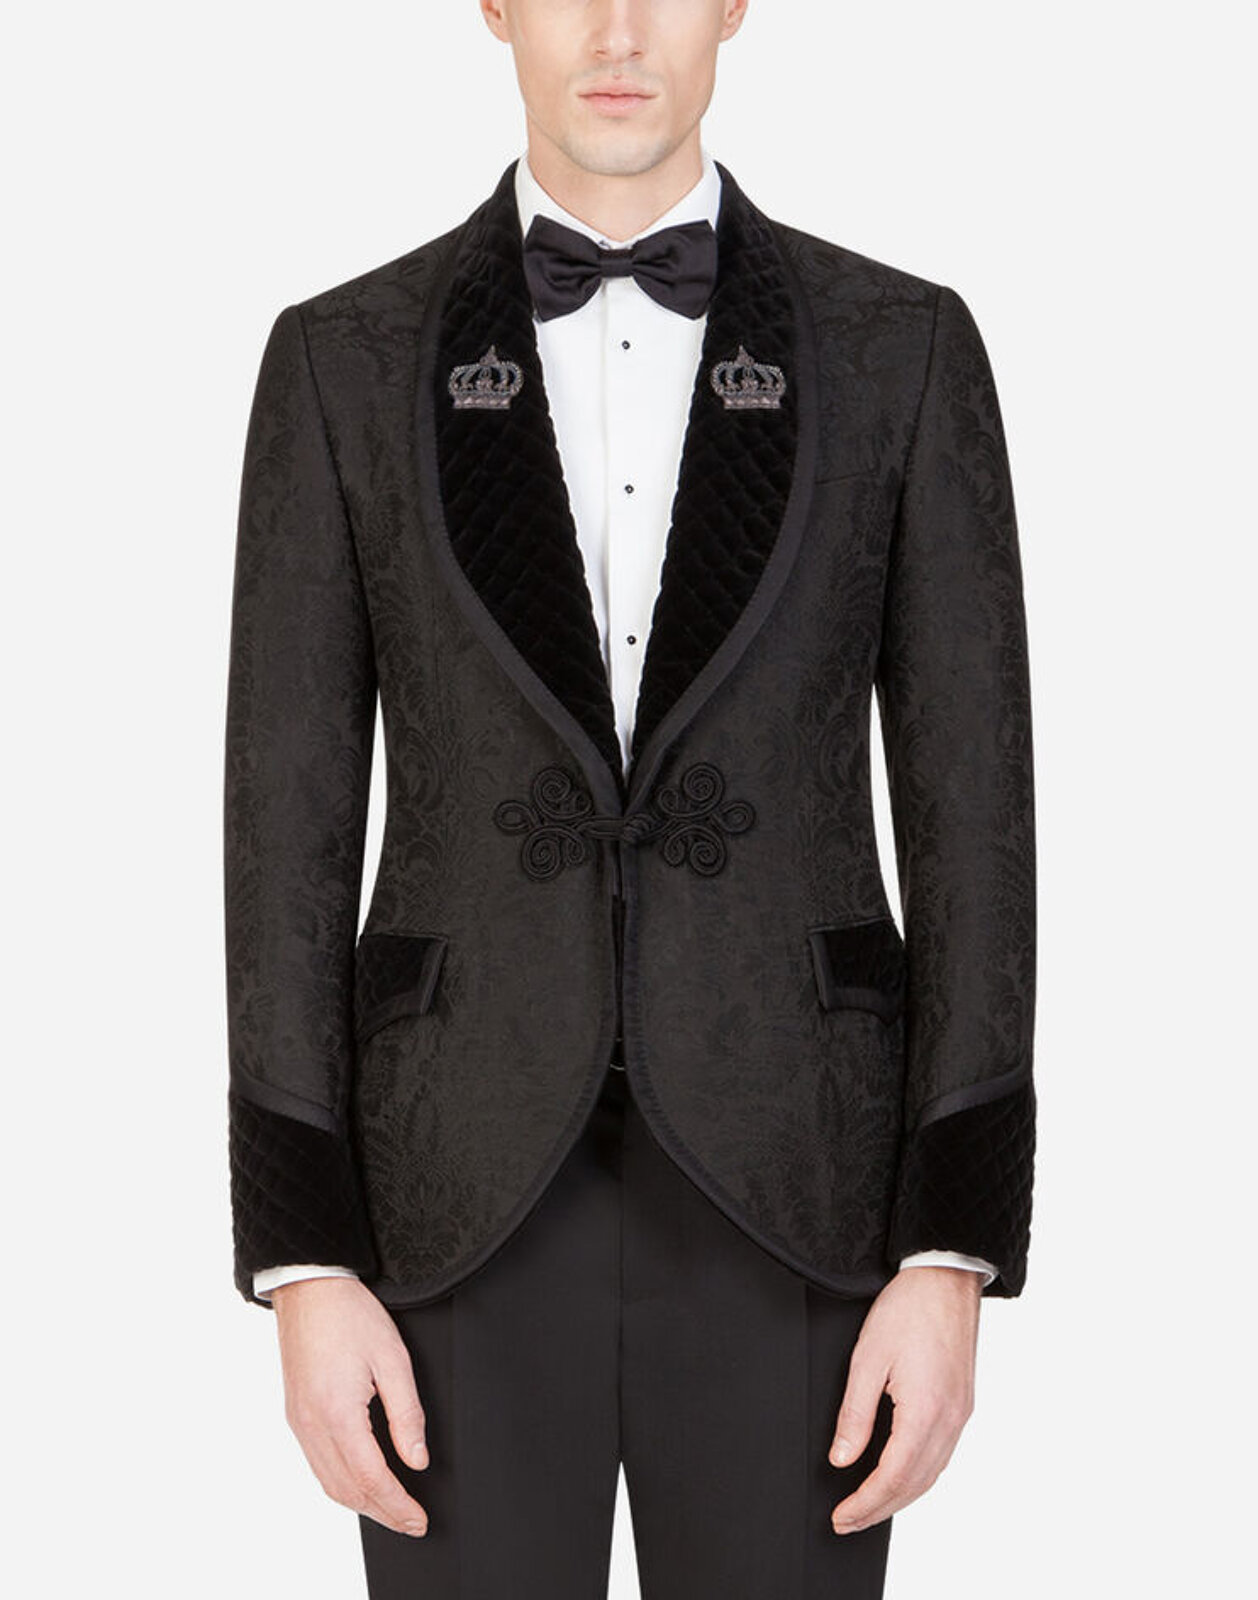 Jacquard Tuxedo Room Jacket With Patch - Dolce & Gabbana